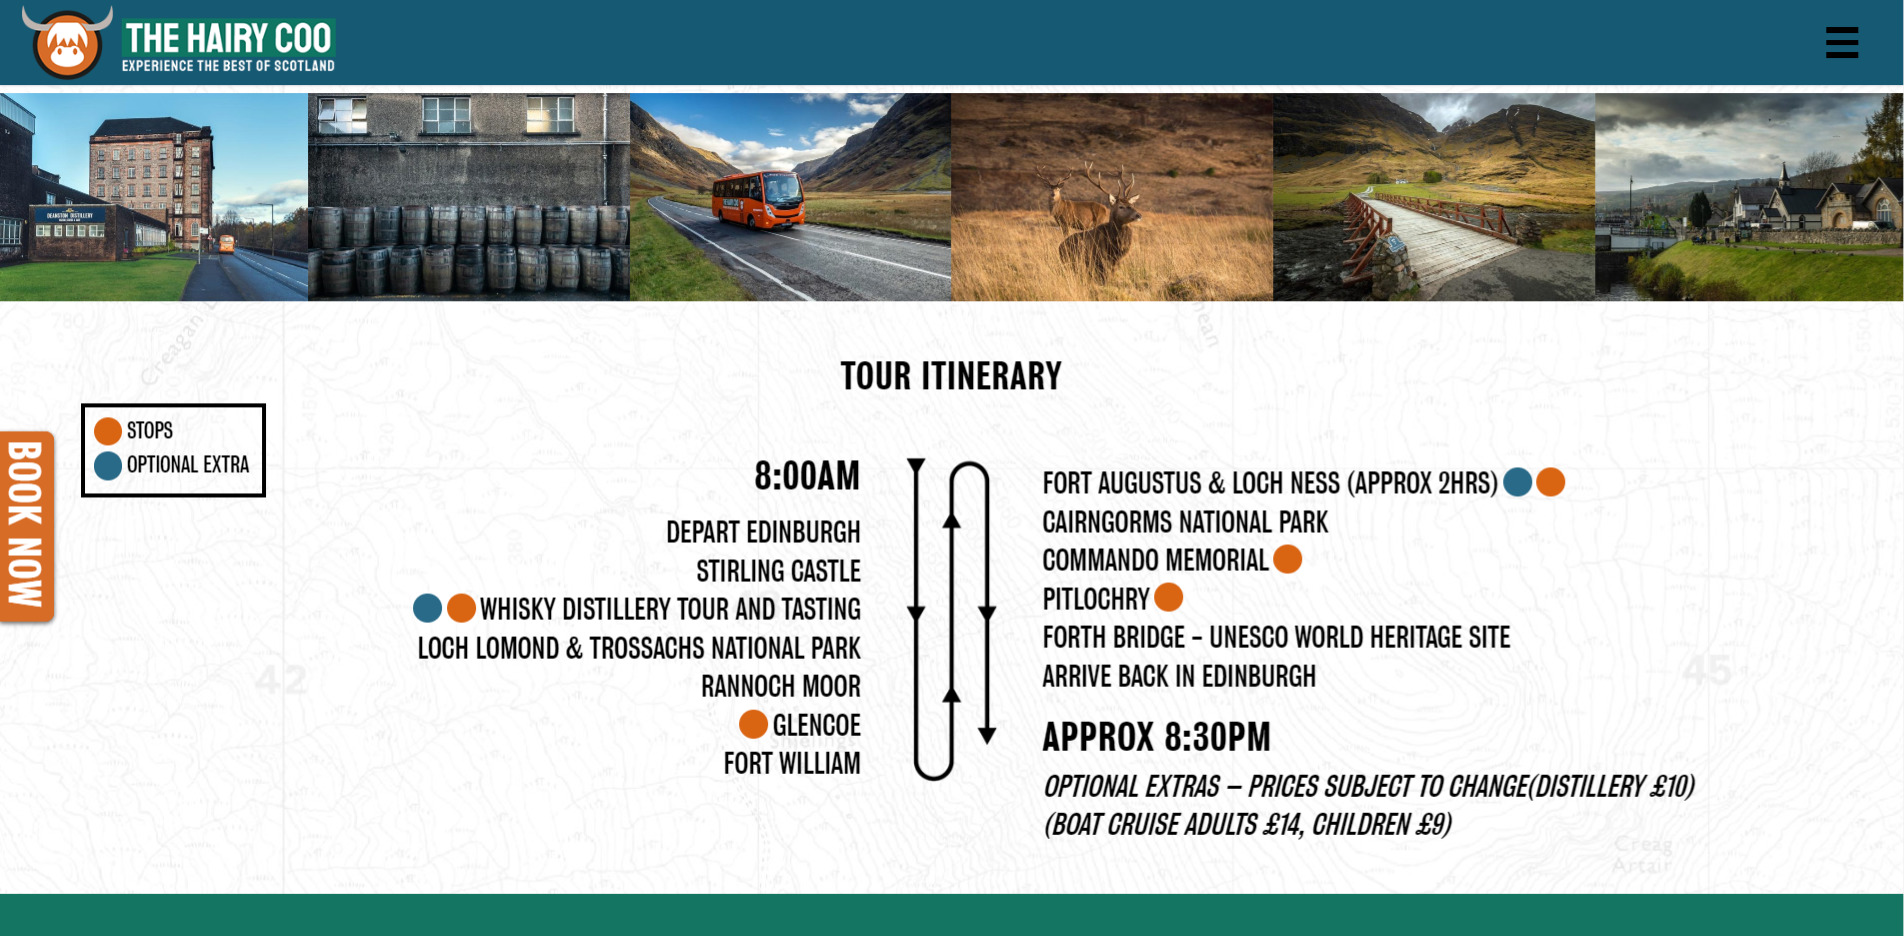 Hairy Coo Website Design 2020 Itinerary